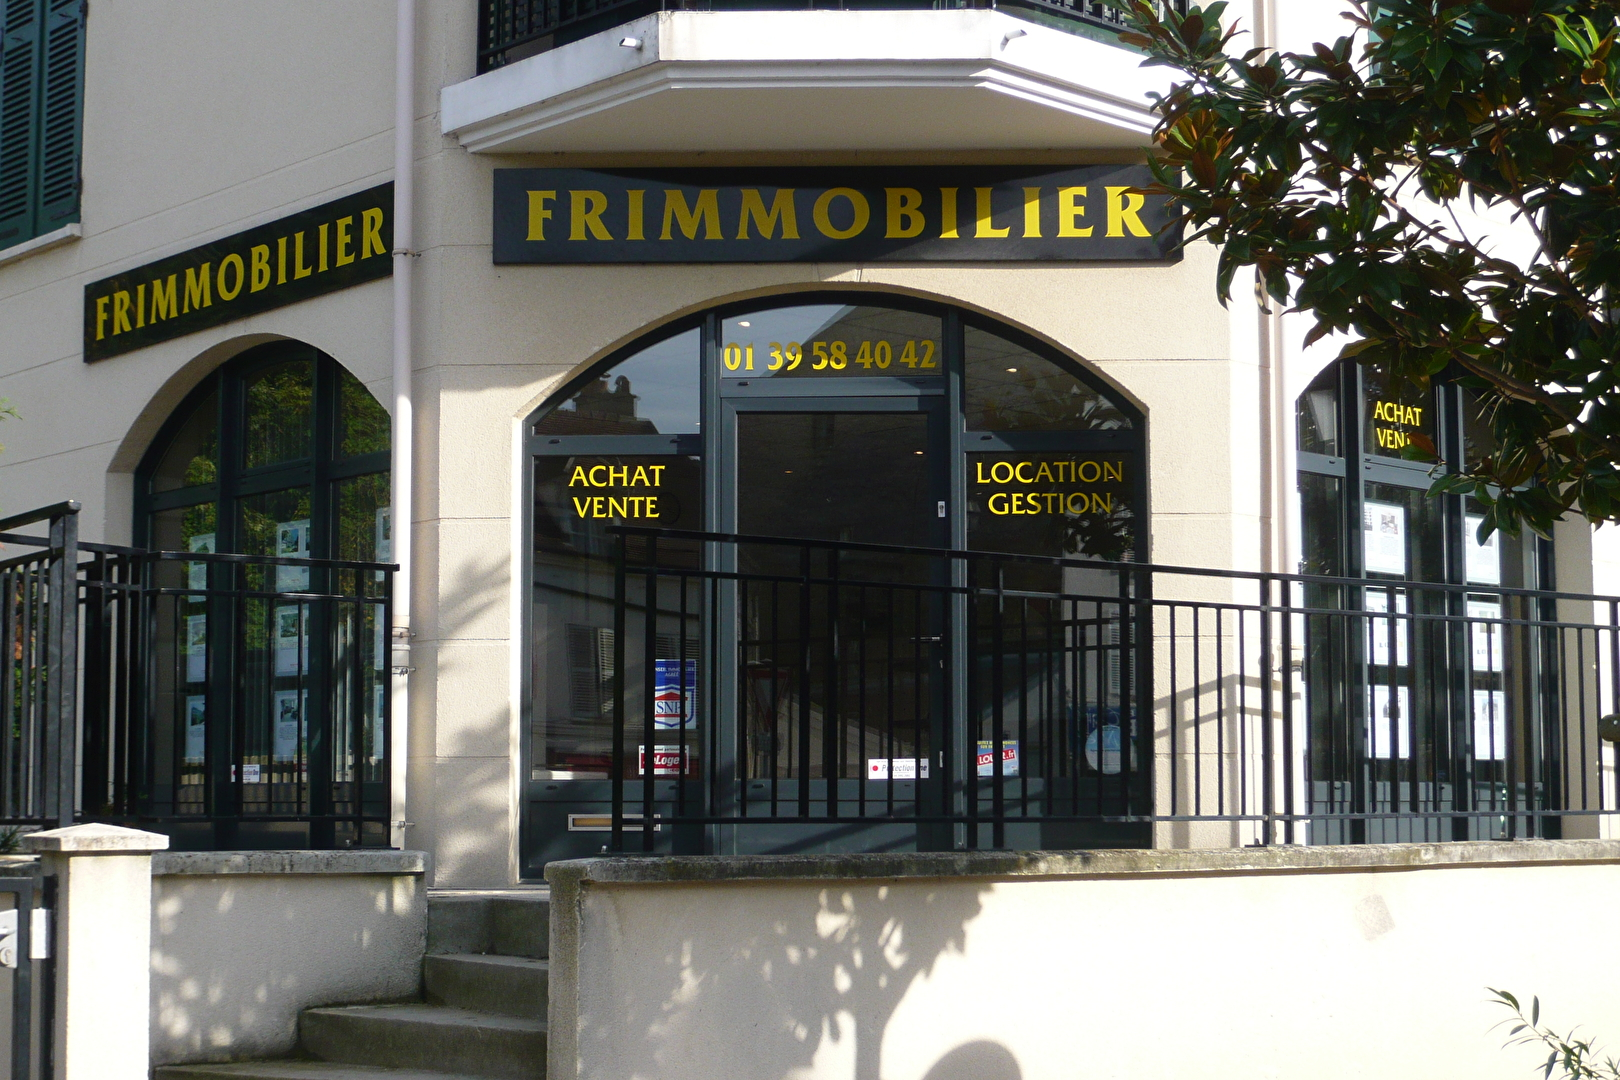 FRIMMOBILIER